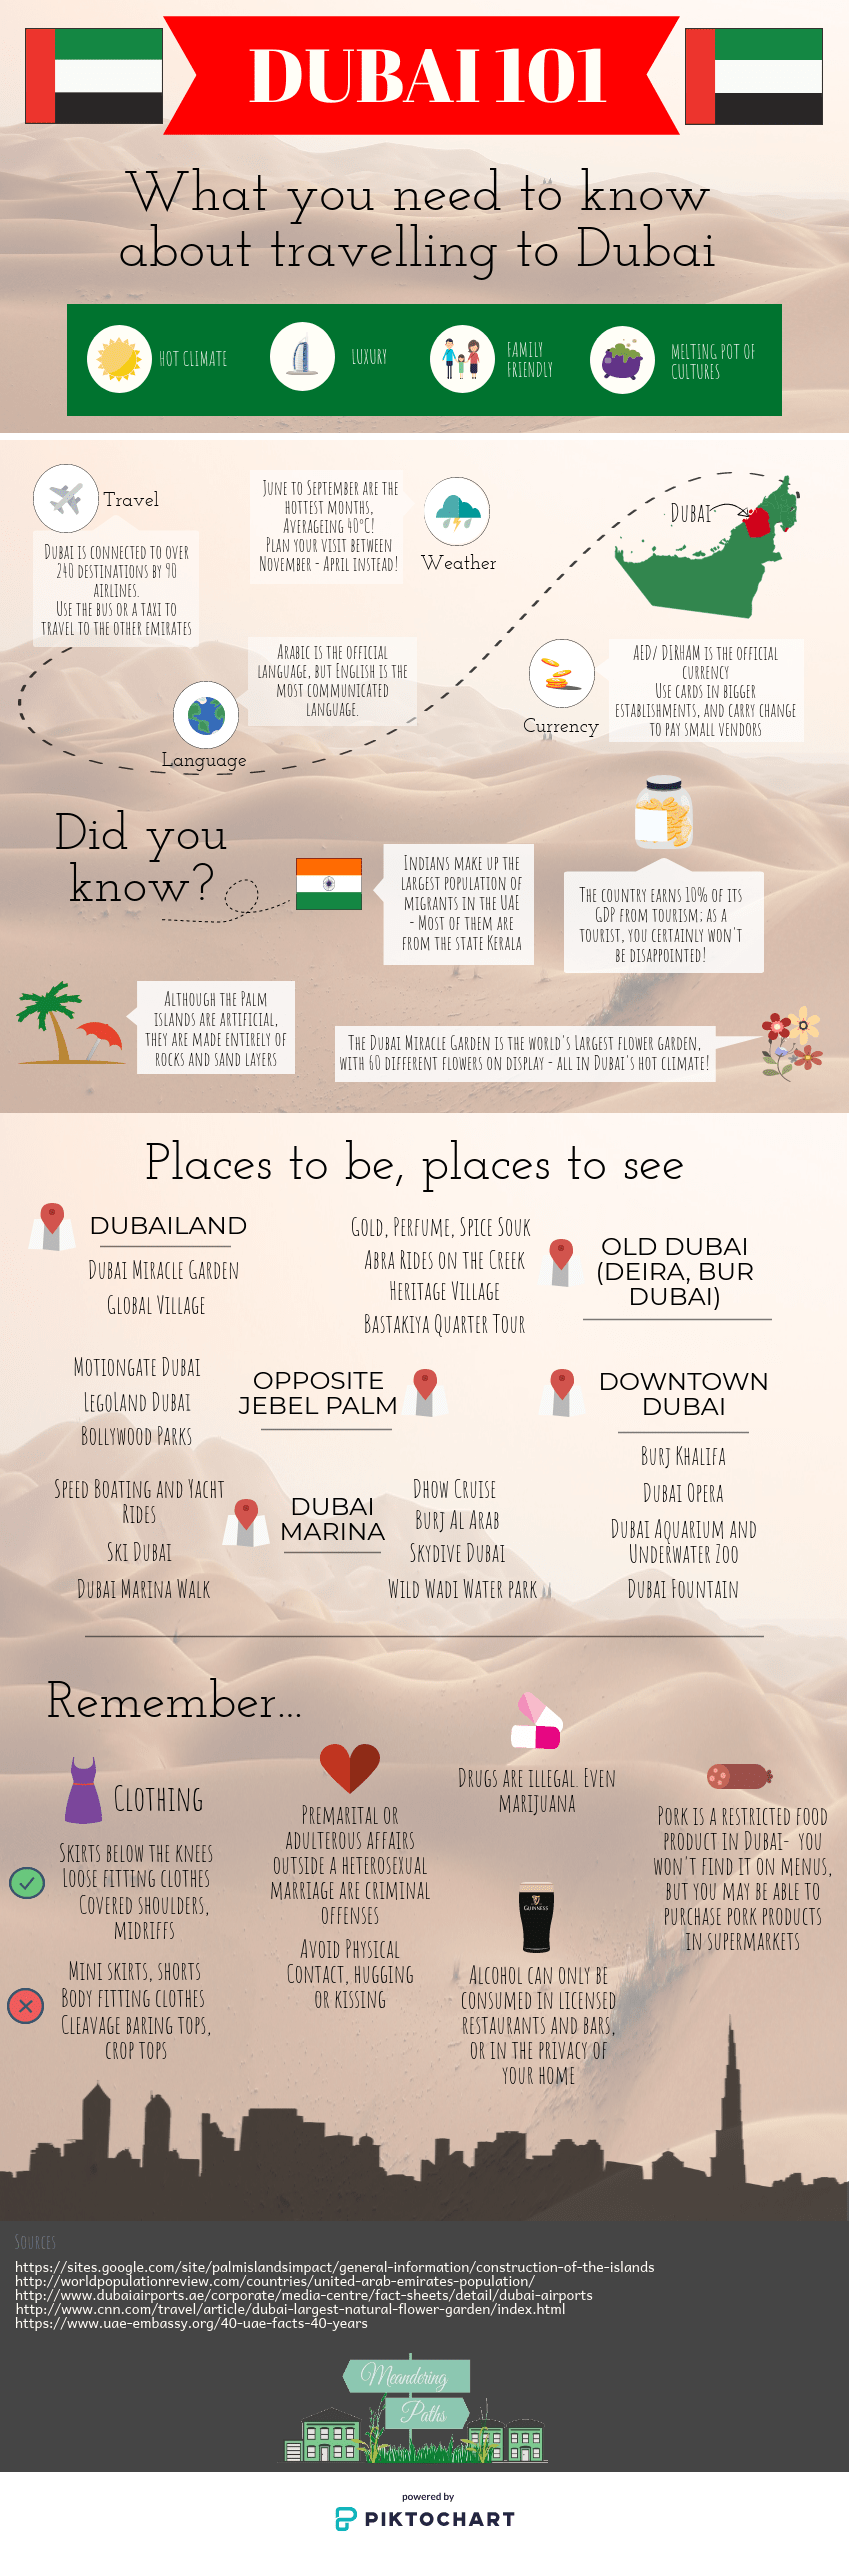 dubai-101-infographic-travel-tourism